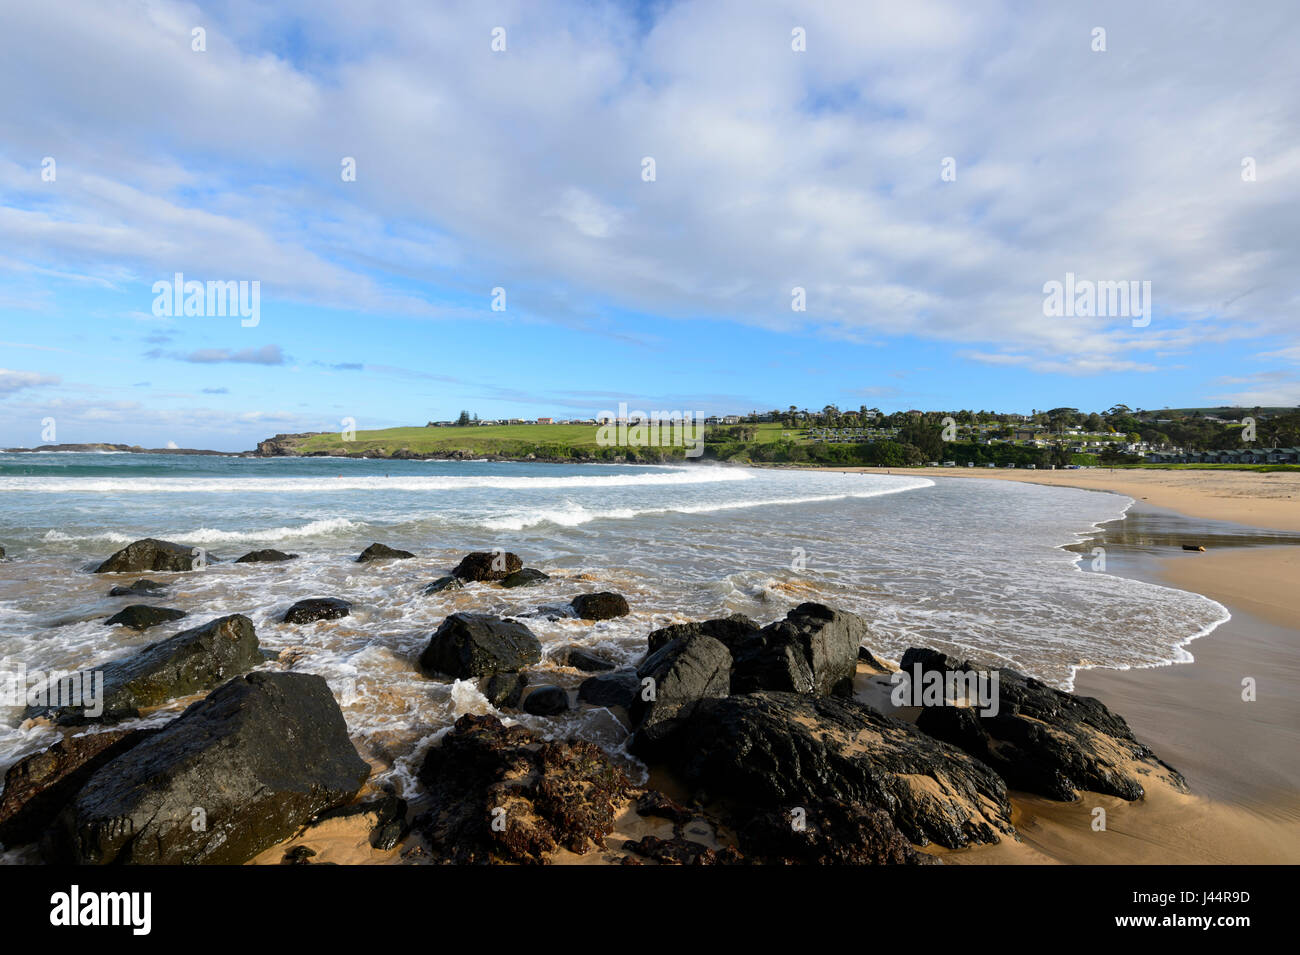 View of Easts Beach, Kiama, Illawarra Coast, New South Wales, NSW, Australia Stock Photo